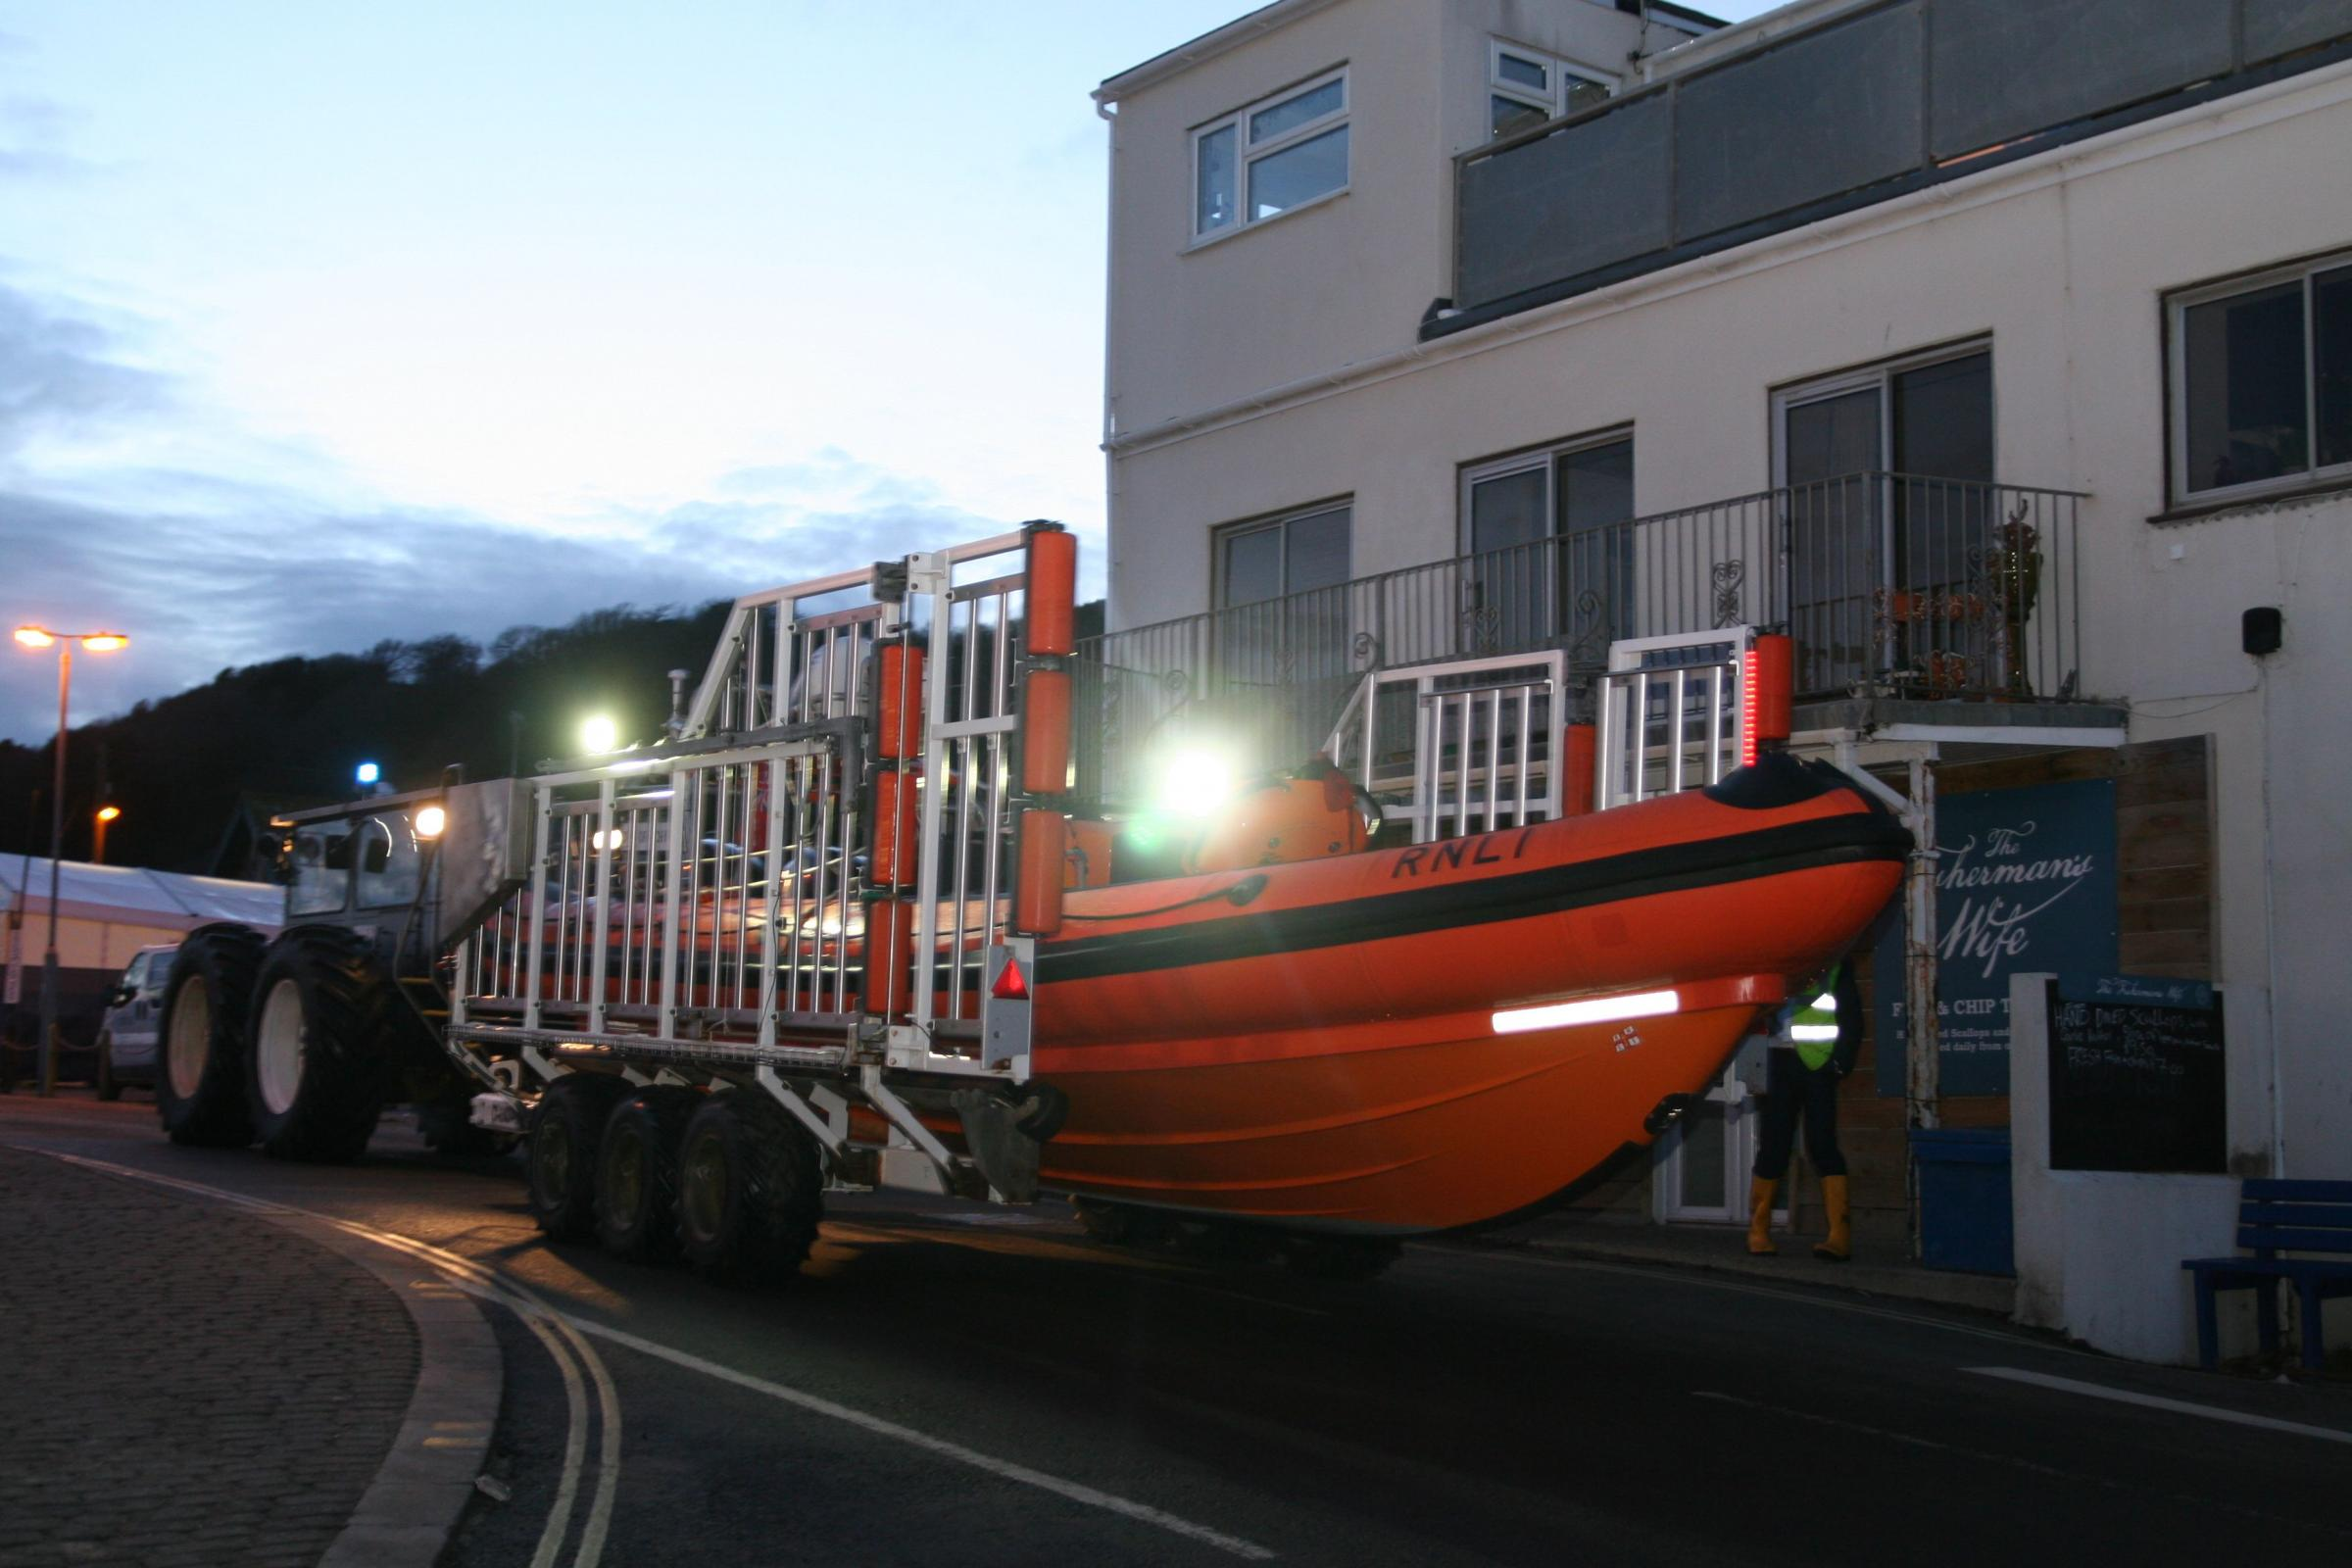 Lifeboat moves to new home